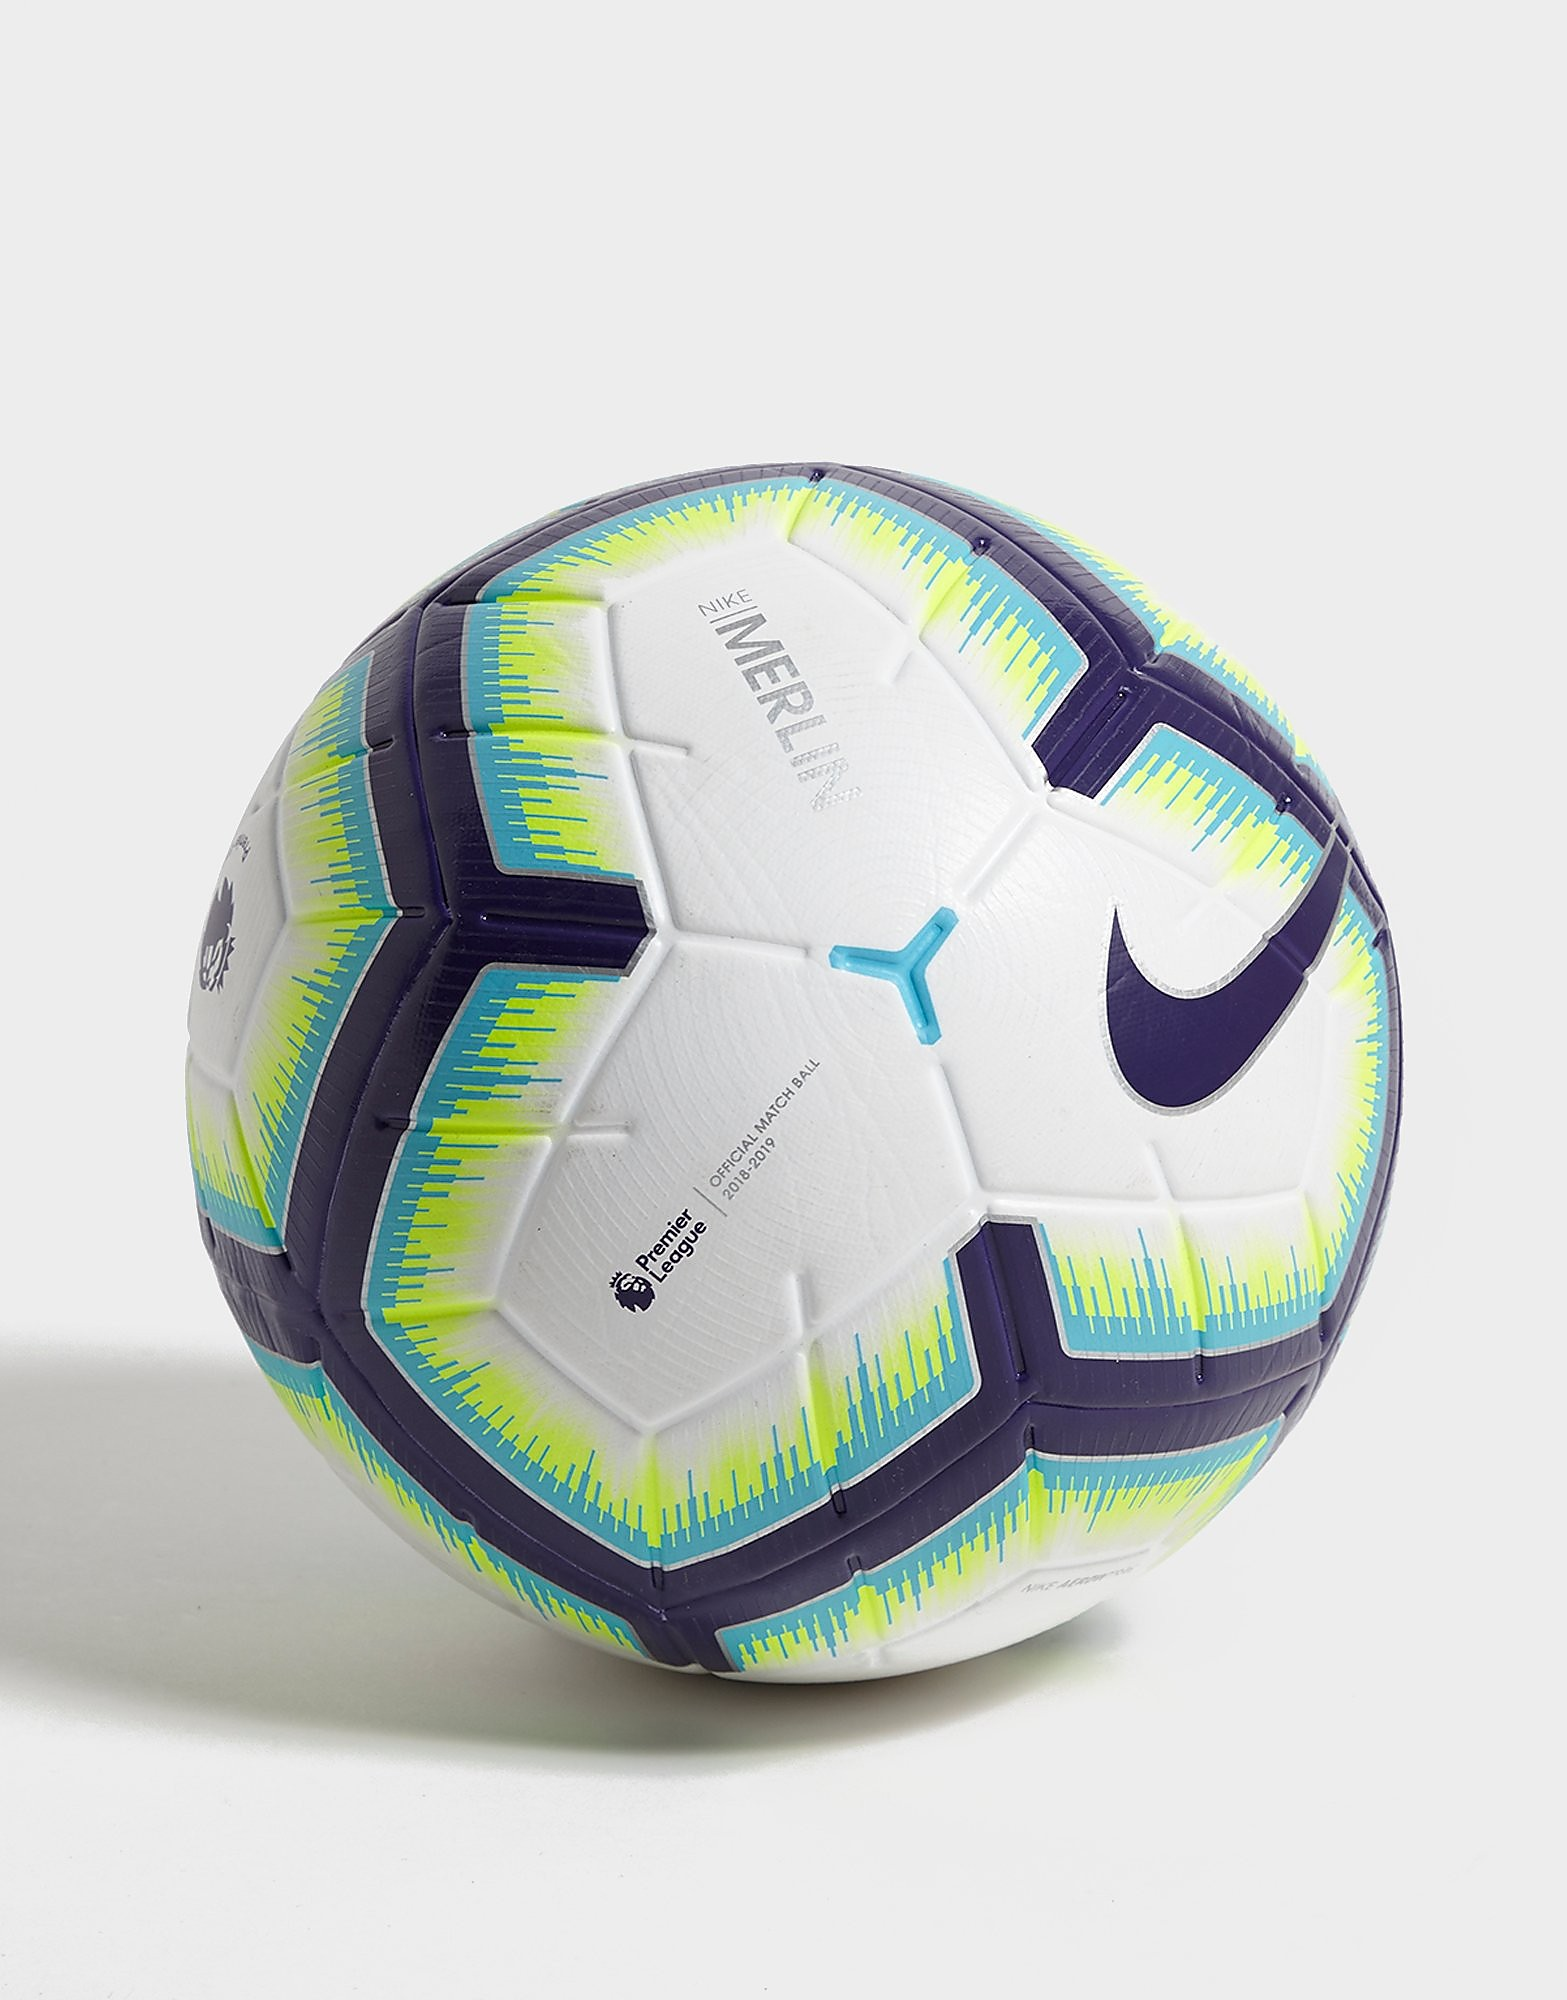 Nike Premier League 2018/19 Merlin Football